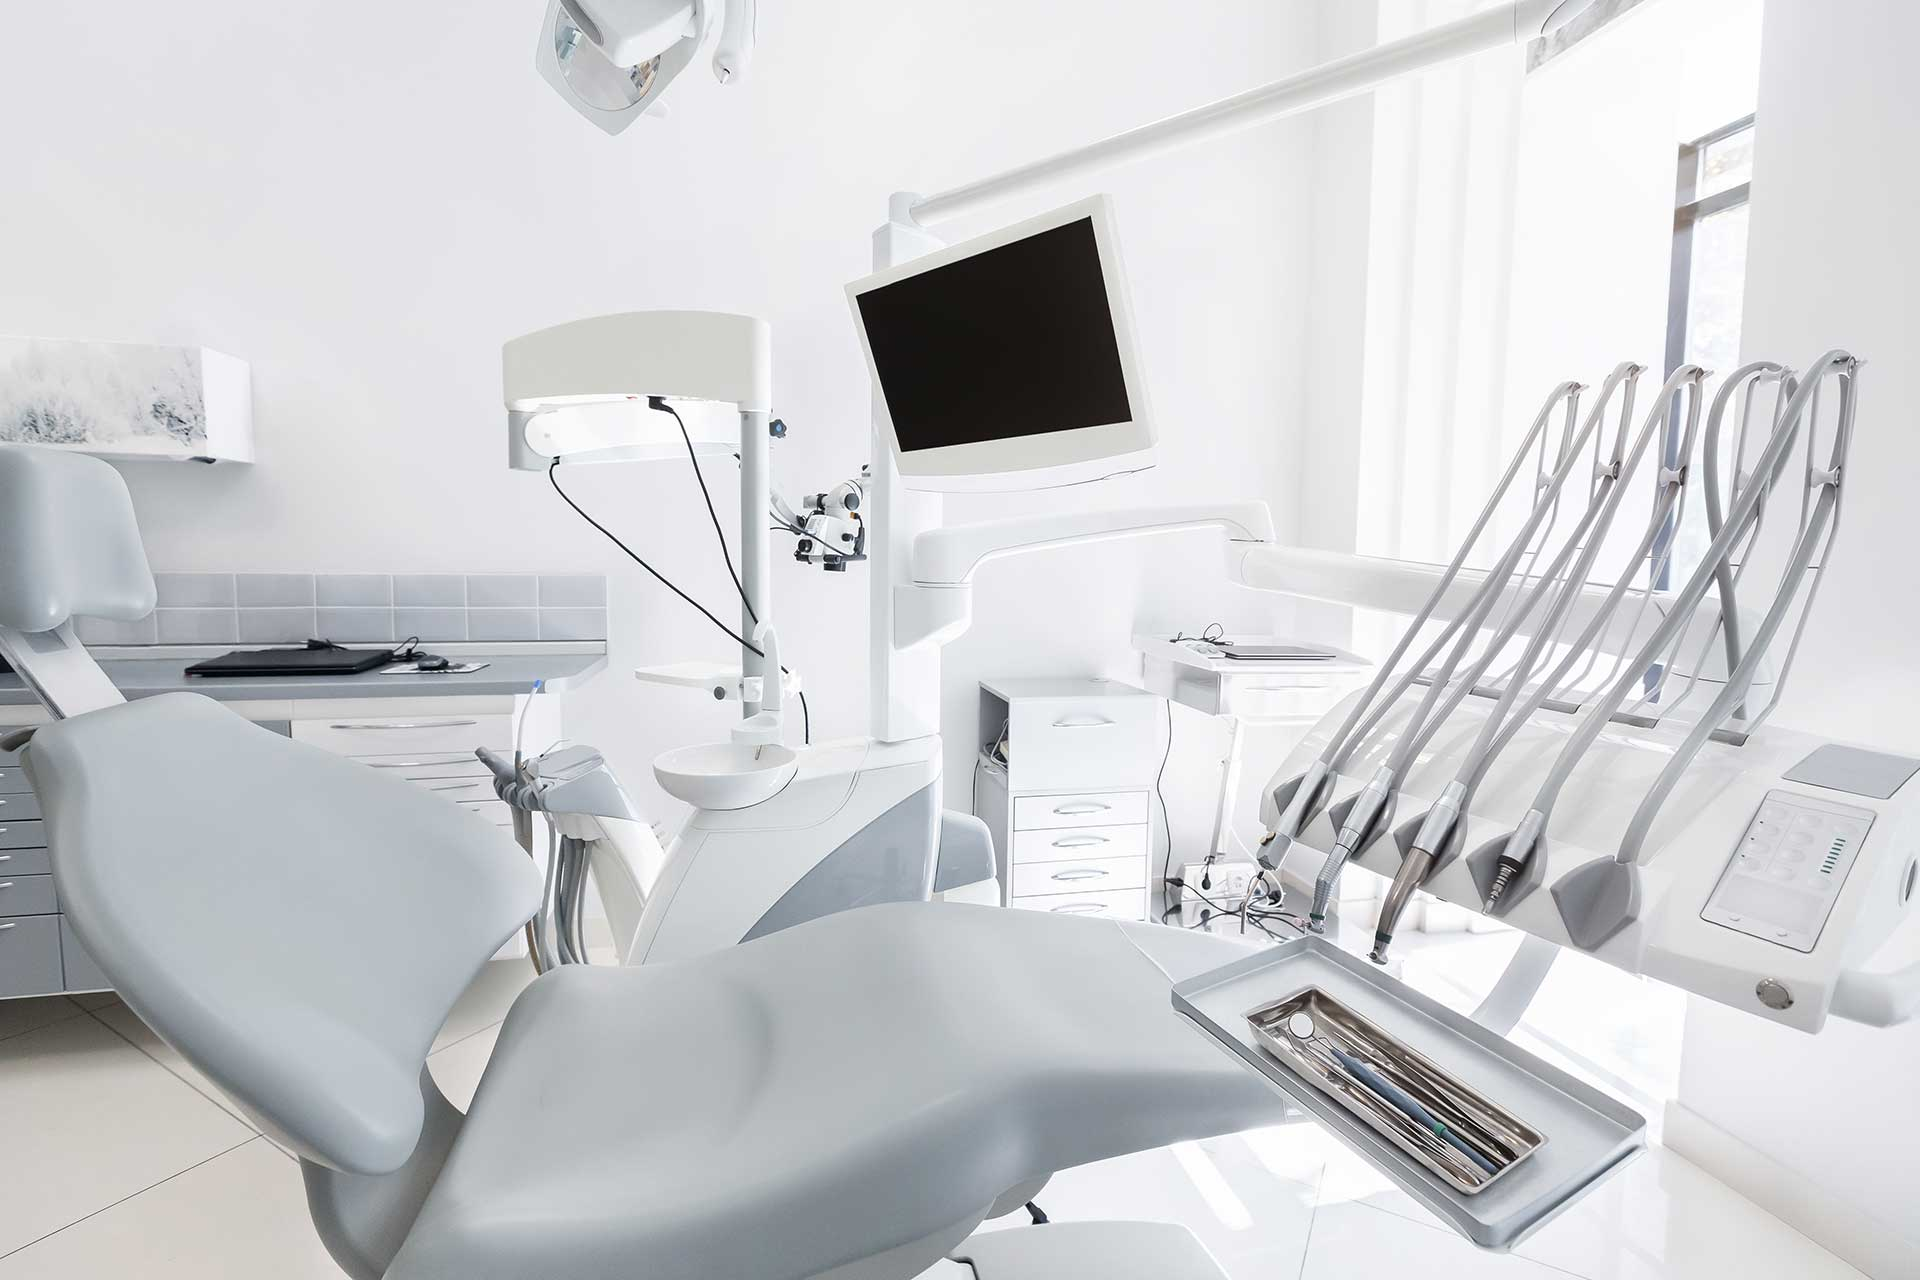 Dental klinik